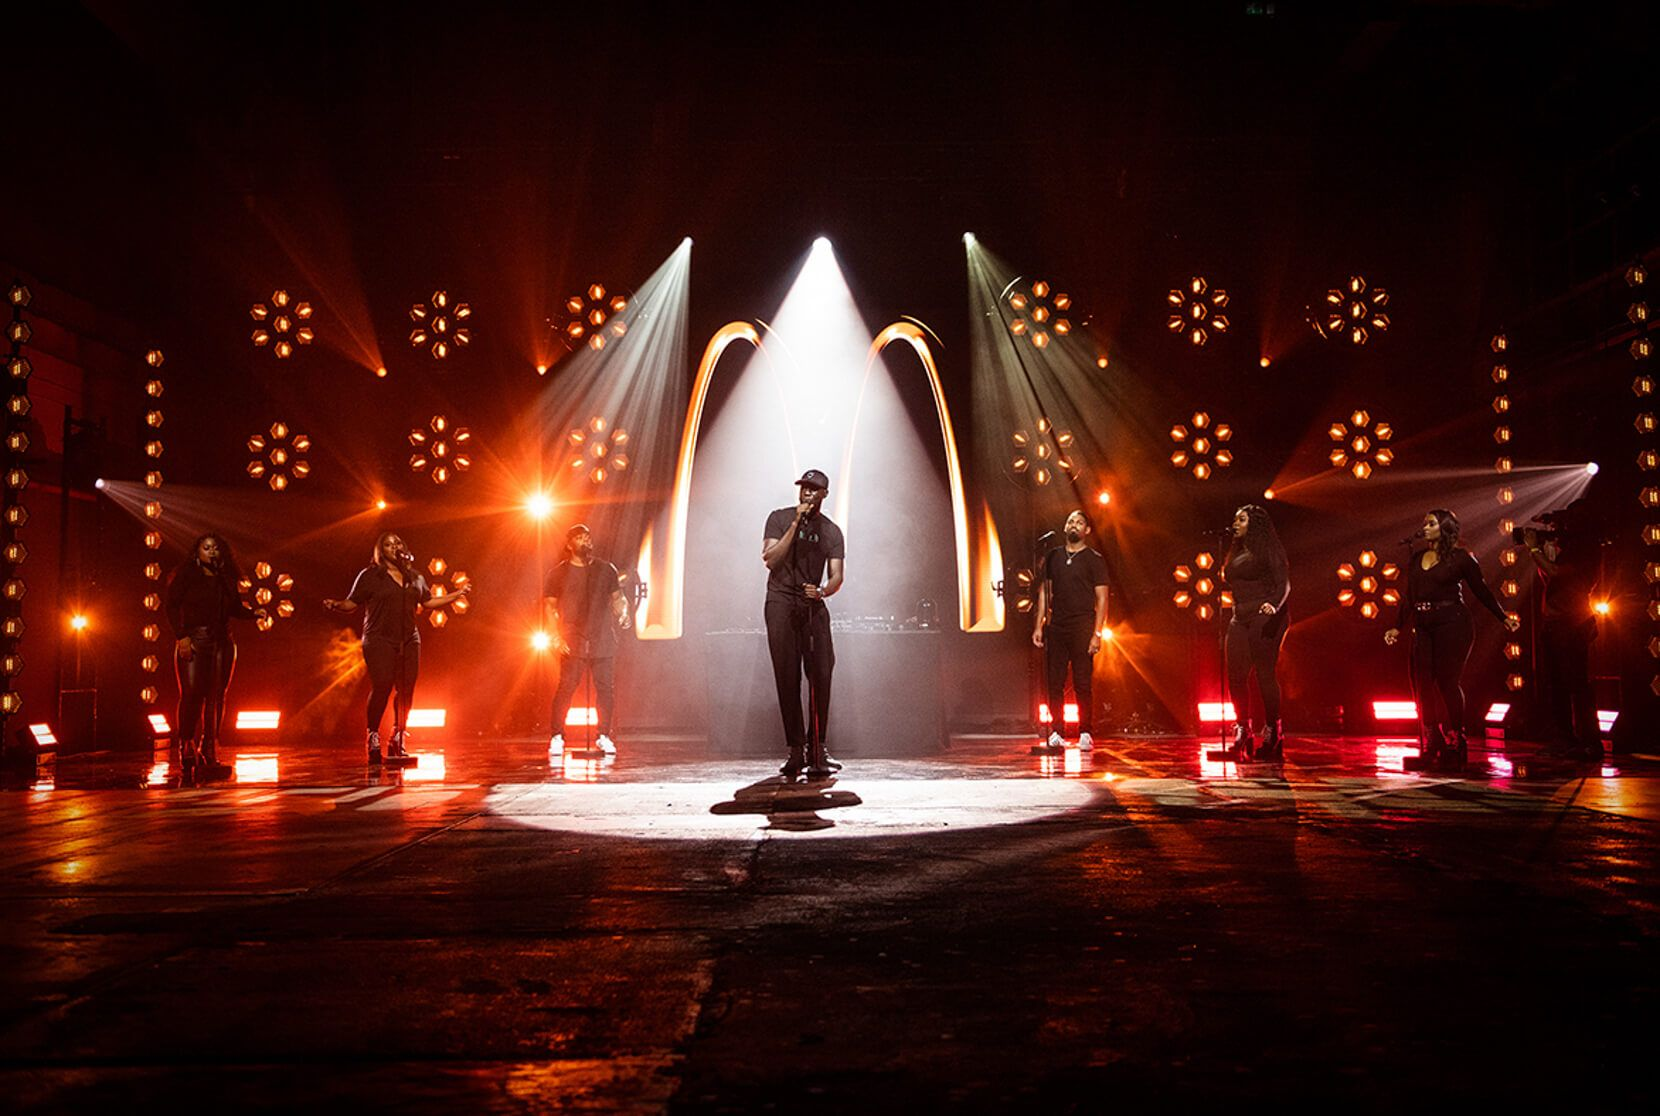 Stormzy sings in front of a large Mcdonalds logo on a dark stage with red uplighting